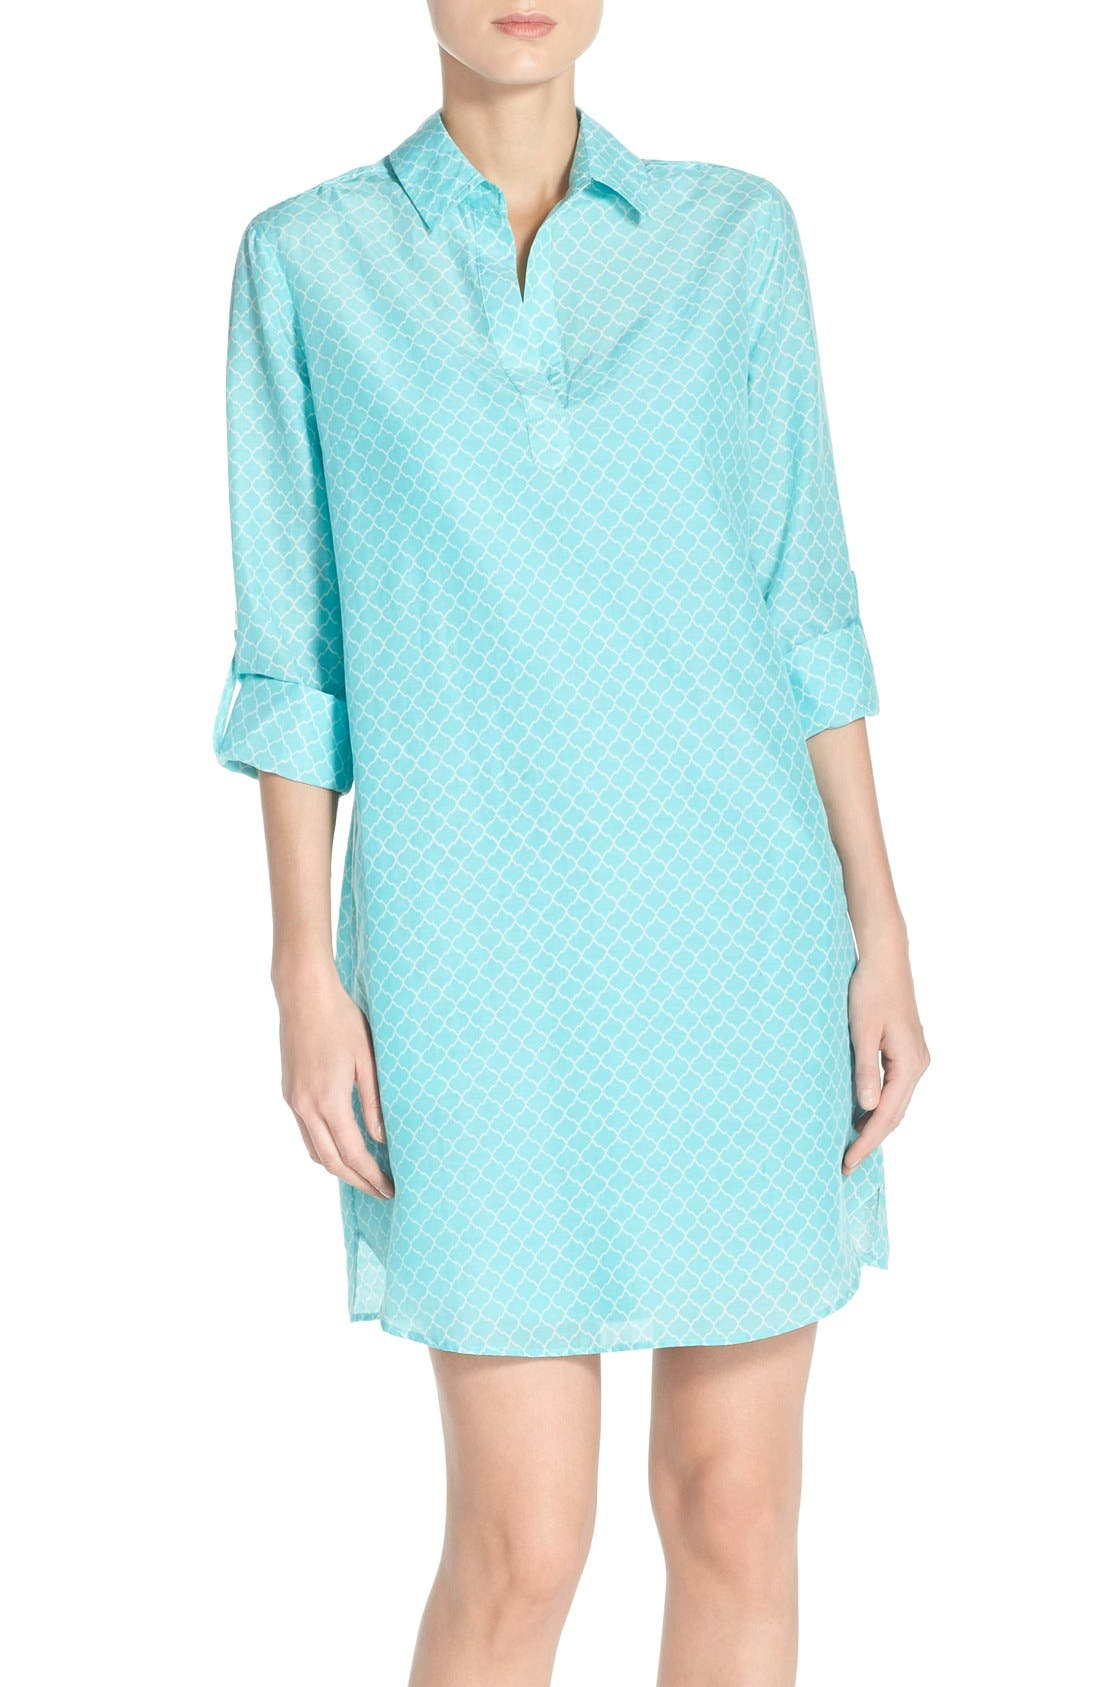 Alternate Image 1 Selected - KUT from the Kloth Print Chambray Shirtdress